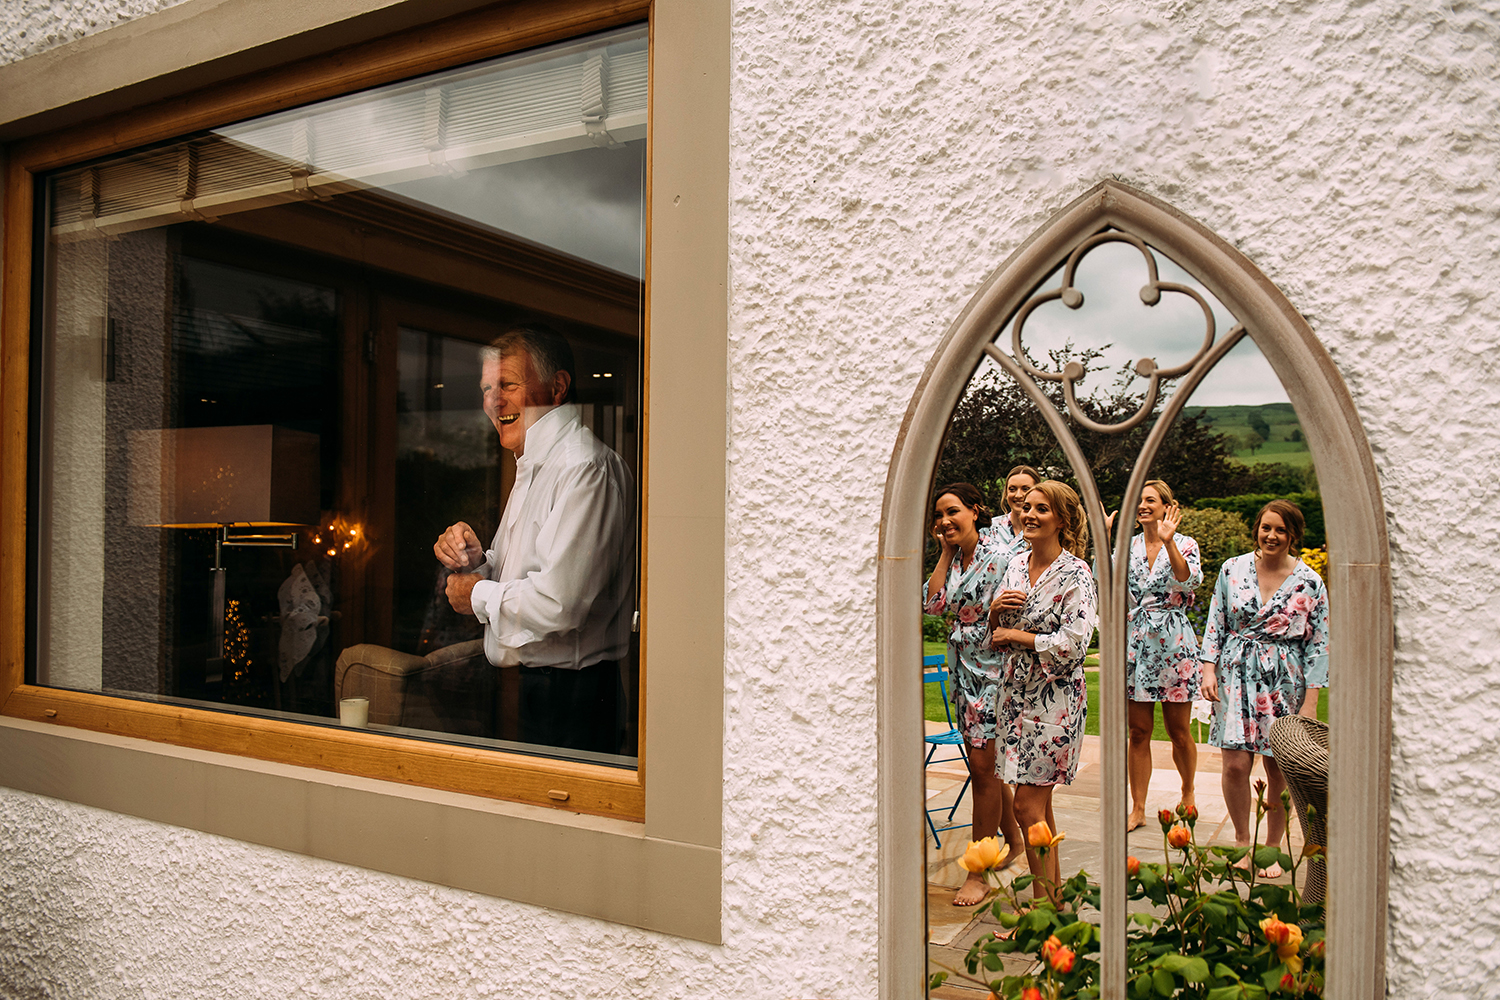 brides father laughs at the bridesmaids - you can see their reflection in the mirror